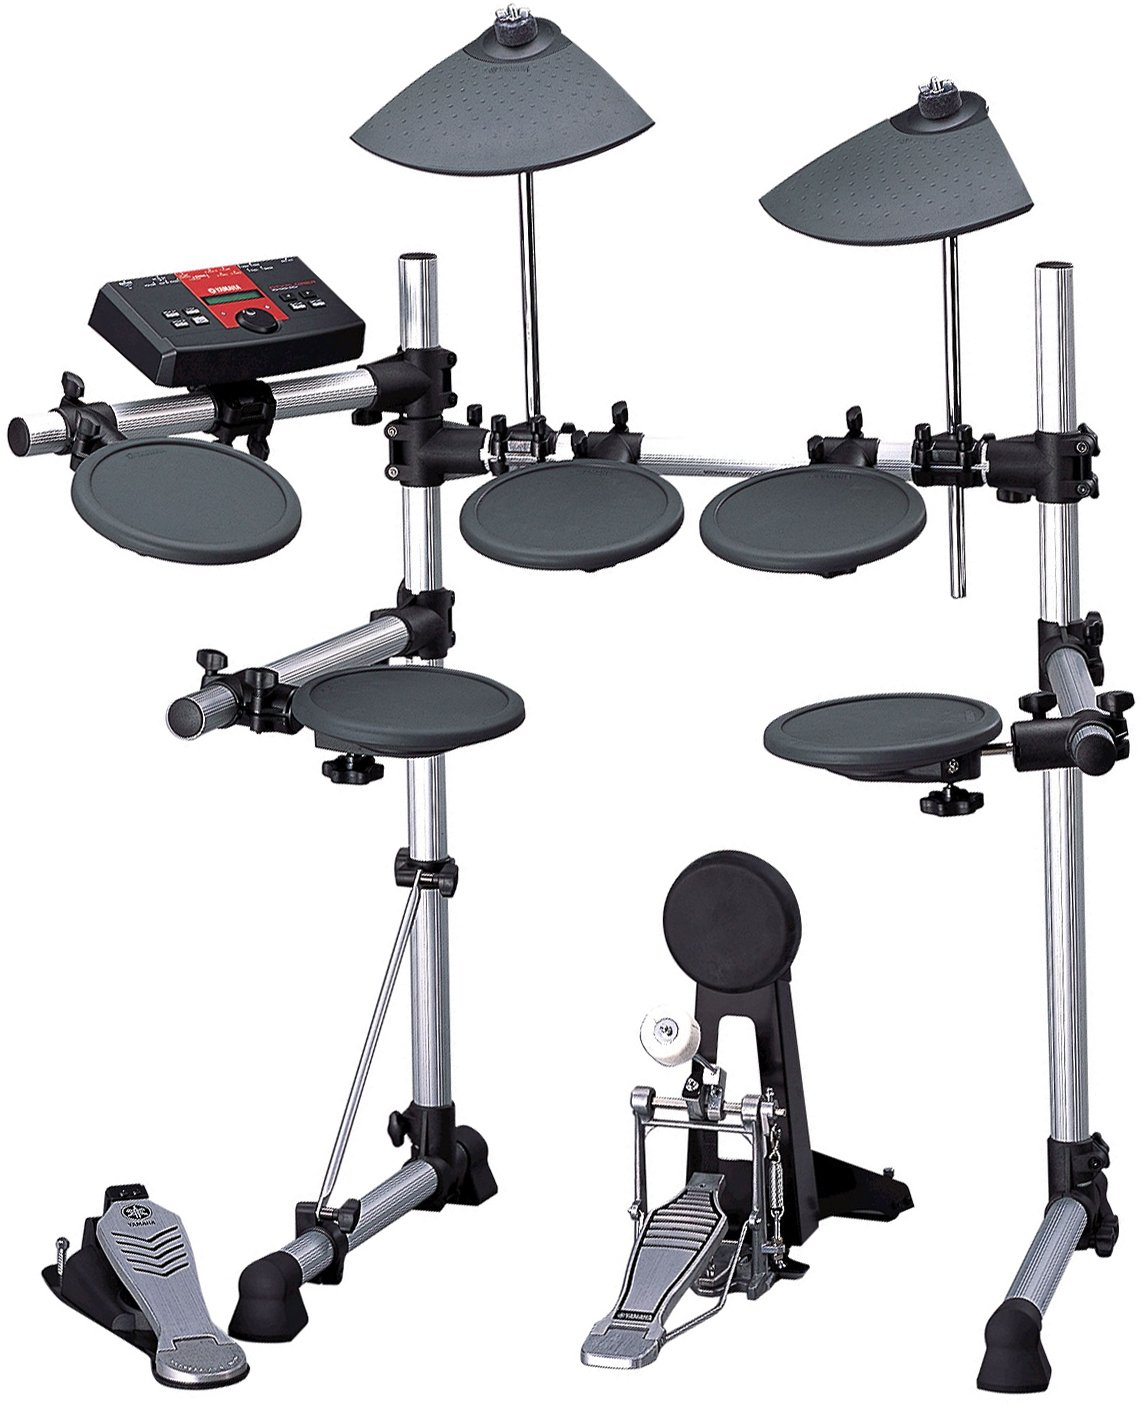 Yamaha electronic drum set dtxplorer for sale buy sell for Yamaha electronic drum kit for sale